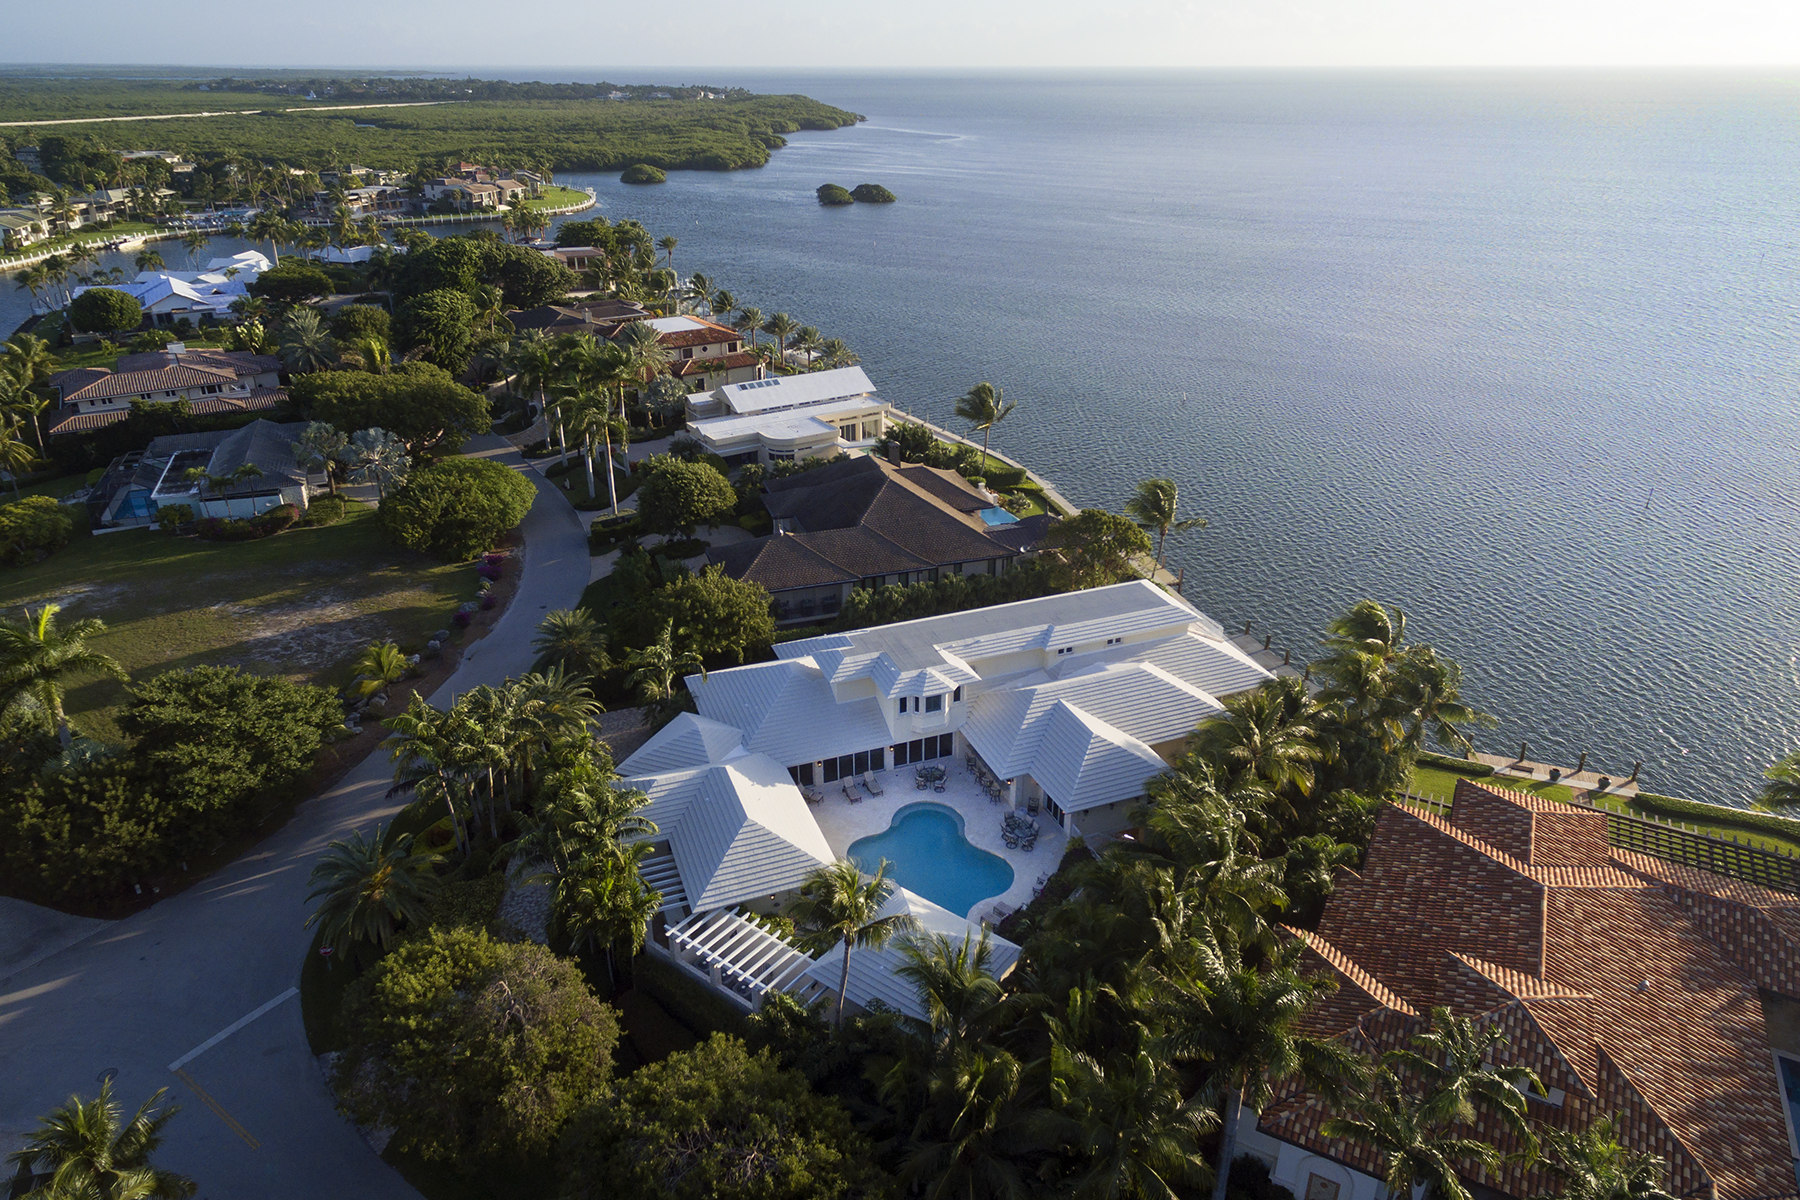 Moradia para Venda às Extraordinary Oceanfront Home at Ocean Reef 24 Angelfish Cay Drive Ocean Reef Community, Key Largo, Florida, 33037 Estados Unidos